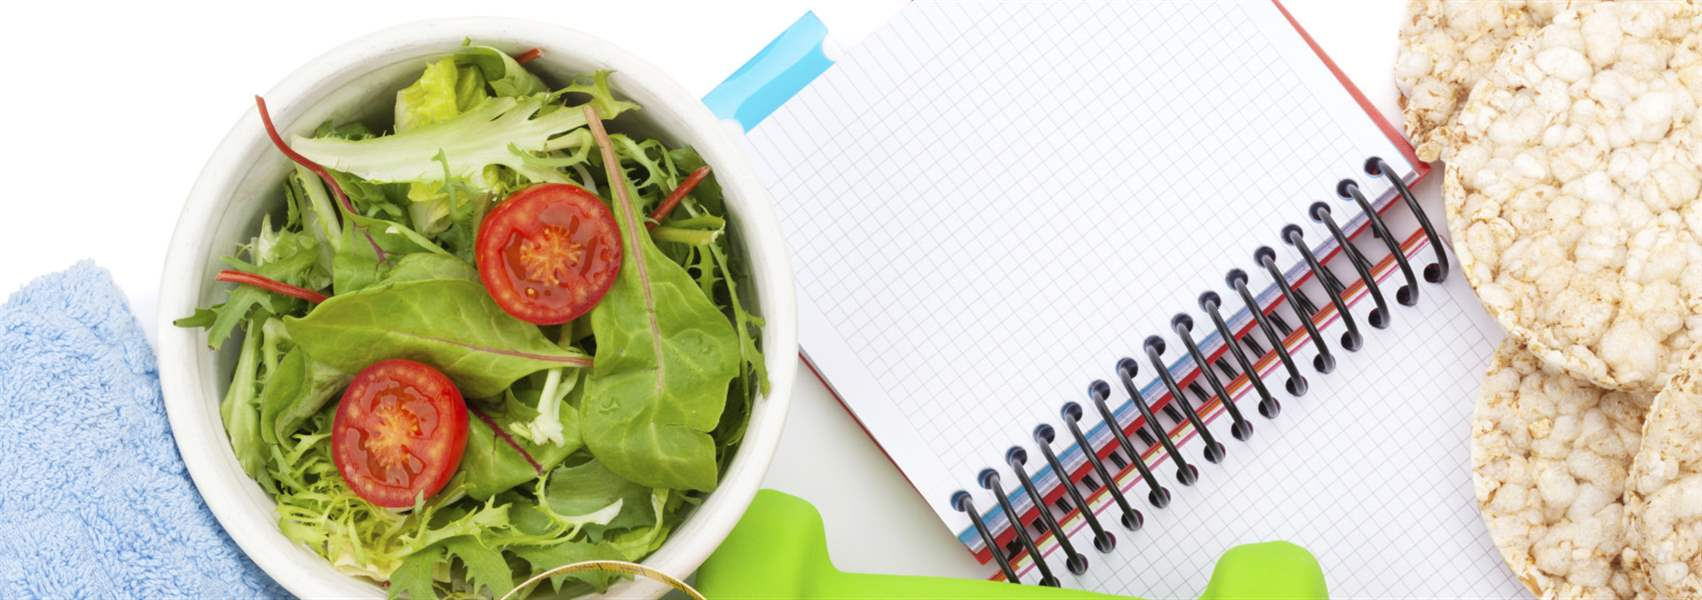 benefits of a healthy diet essay